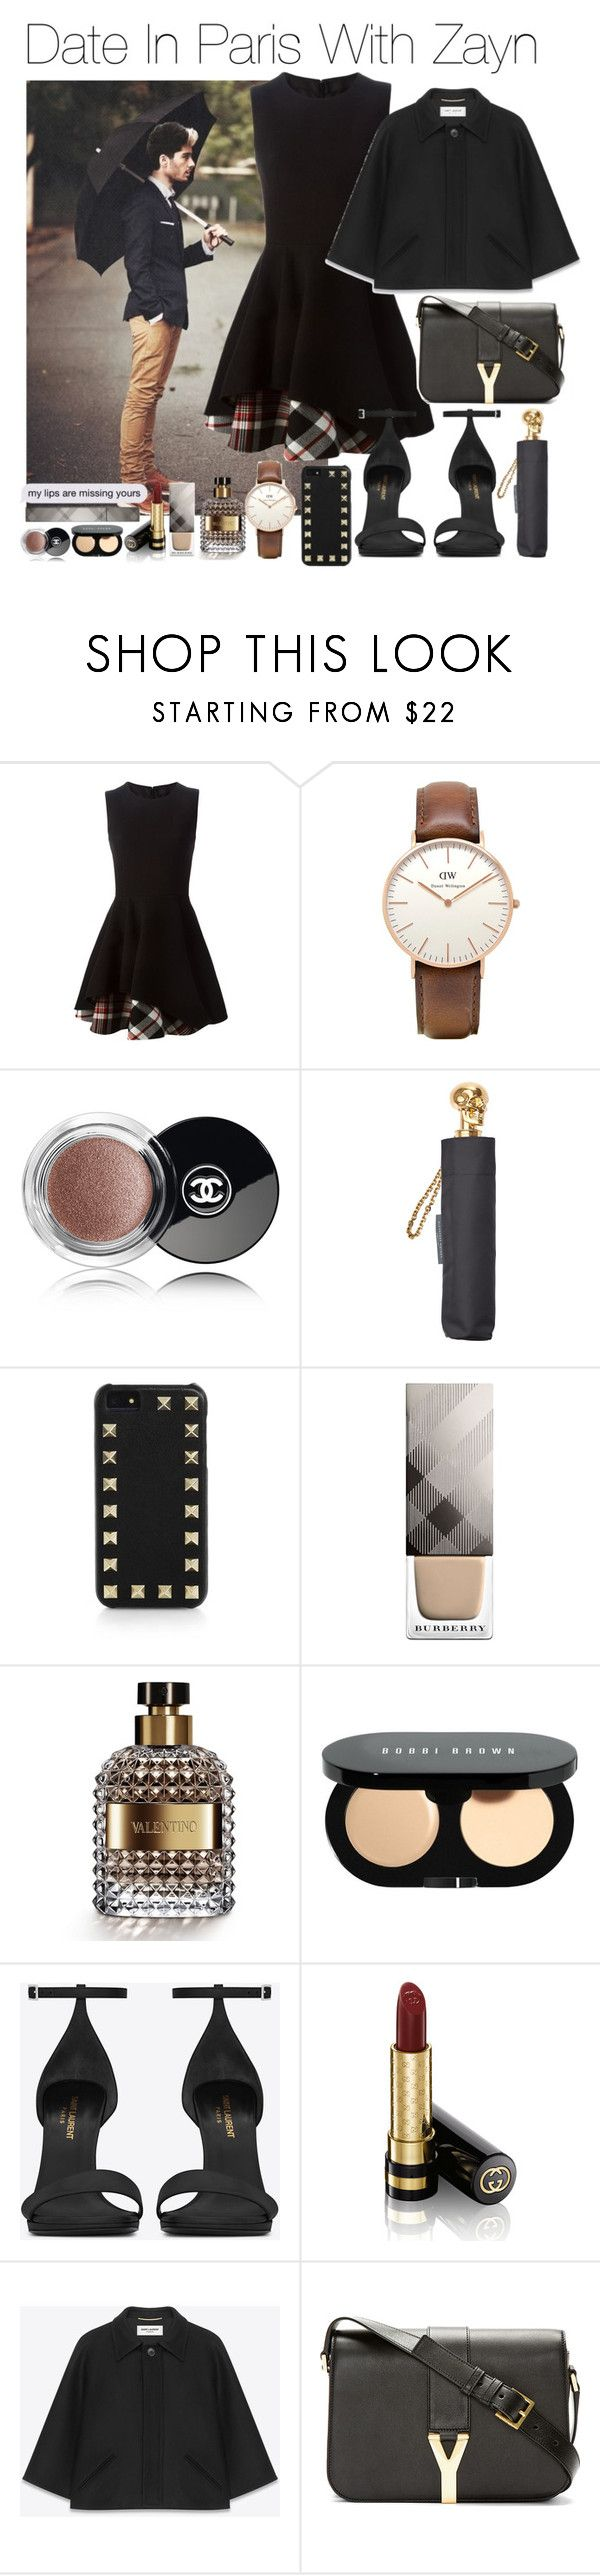 """""""Date In Paris With Zayn (Requested)"""" by one-direction-outfitsxxx ❤ liked on Polyvore featuring Alexander McQueen, Topshop, Chanel, Valentino, Burberry, Bobbi Brown Cosmetics, Yves Saint Laurent and Gucci"""